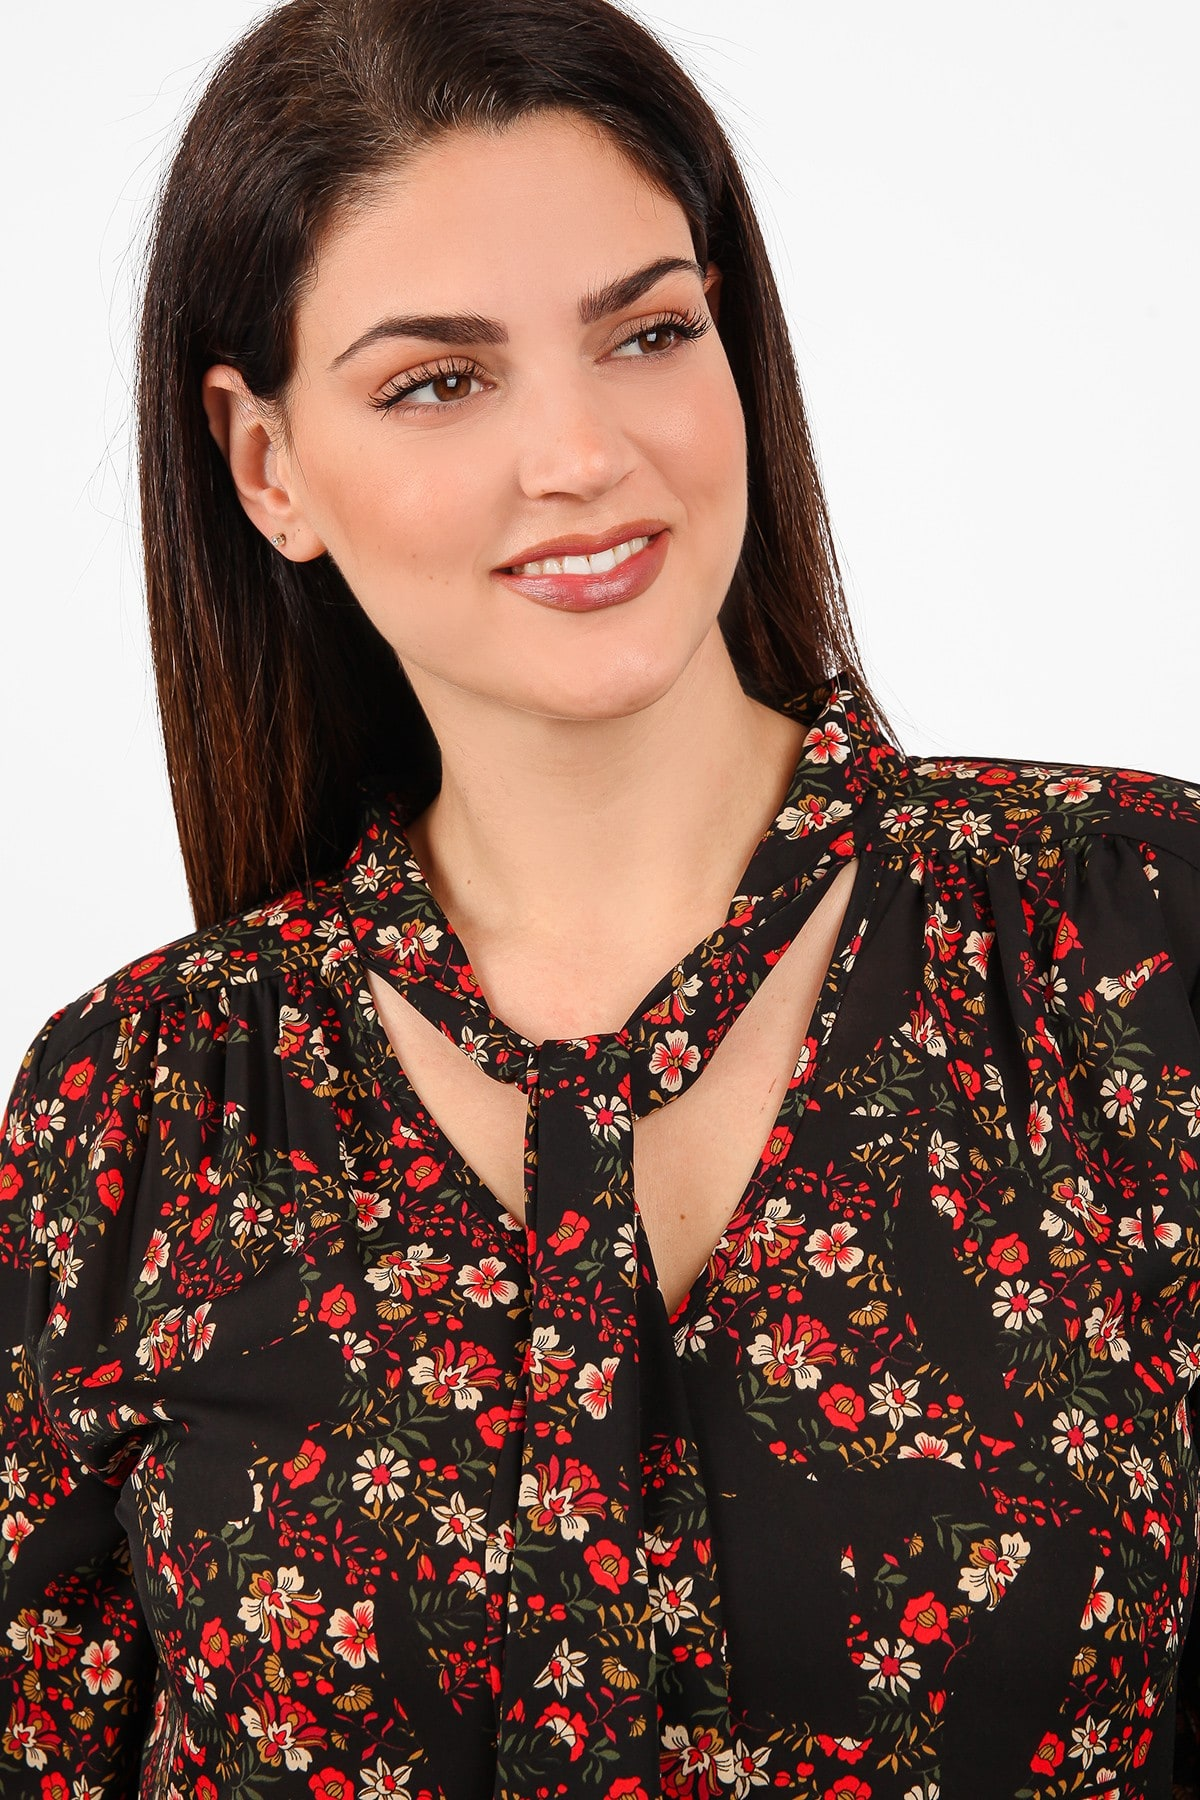 Floral shirt with embossed scarf